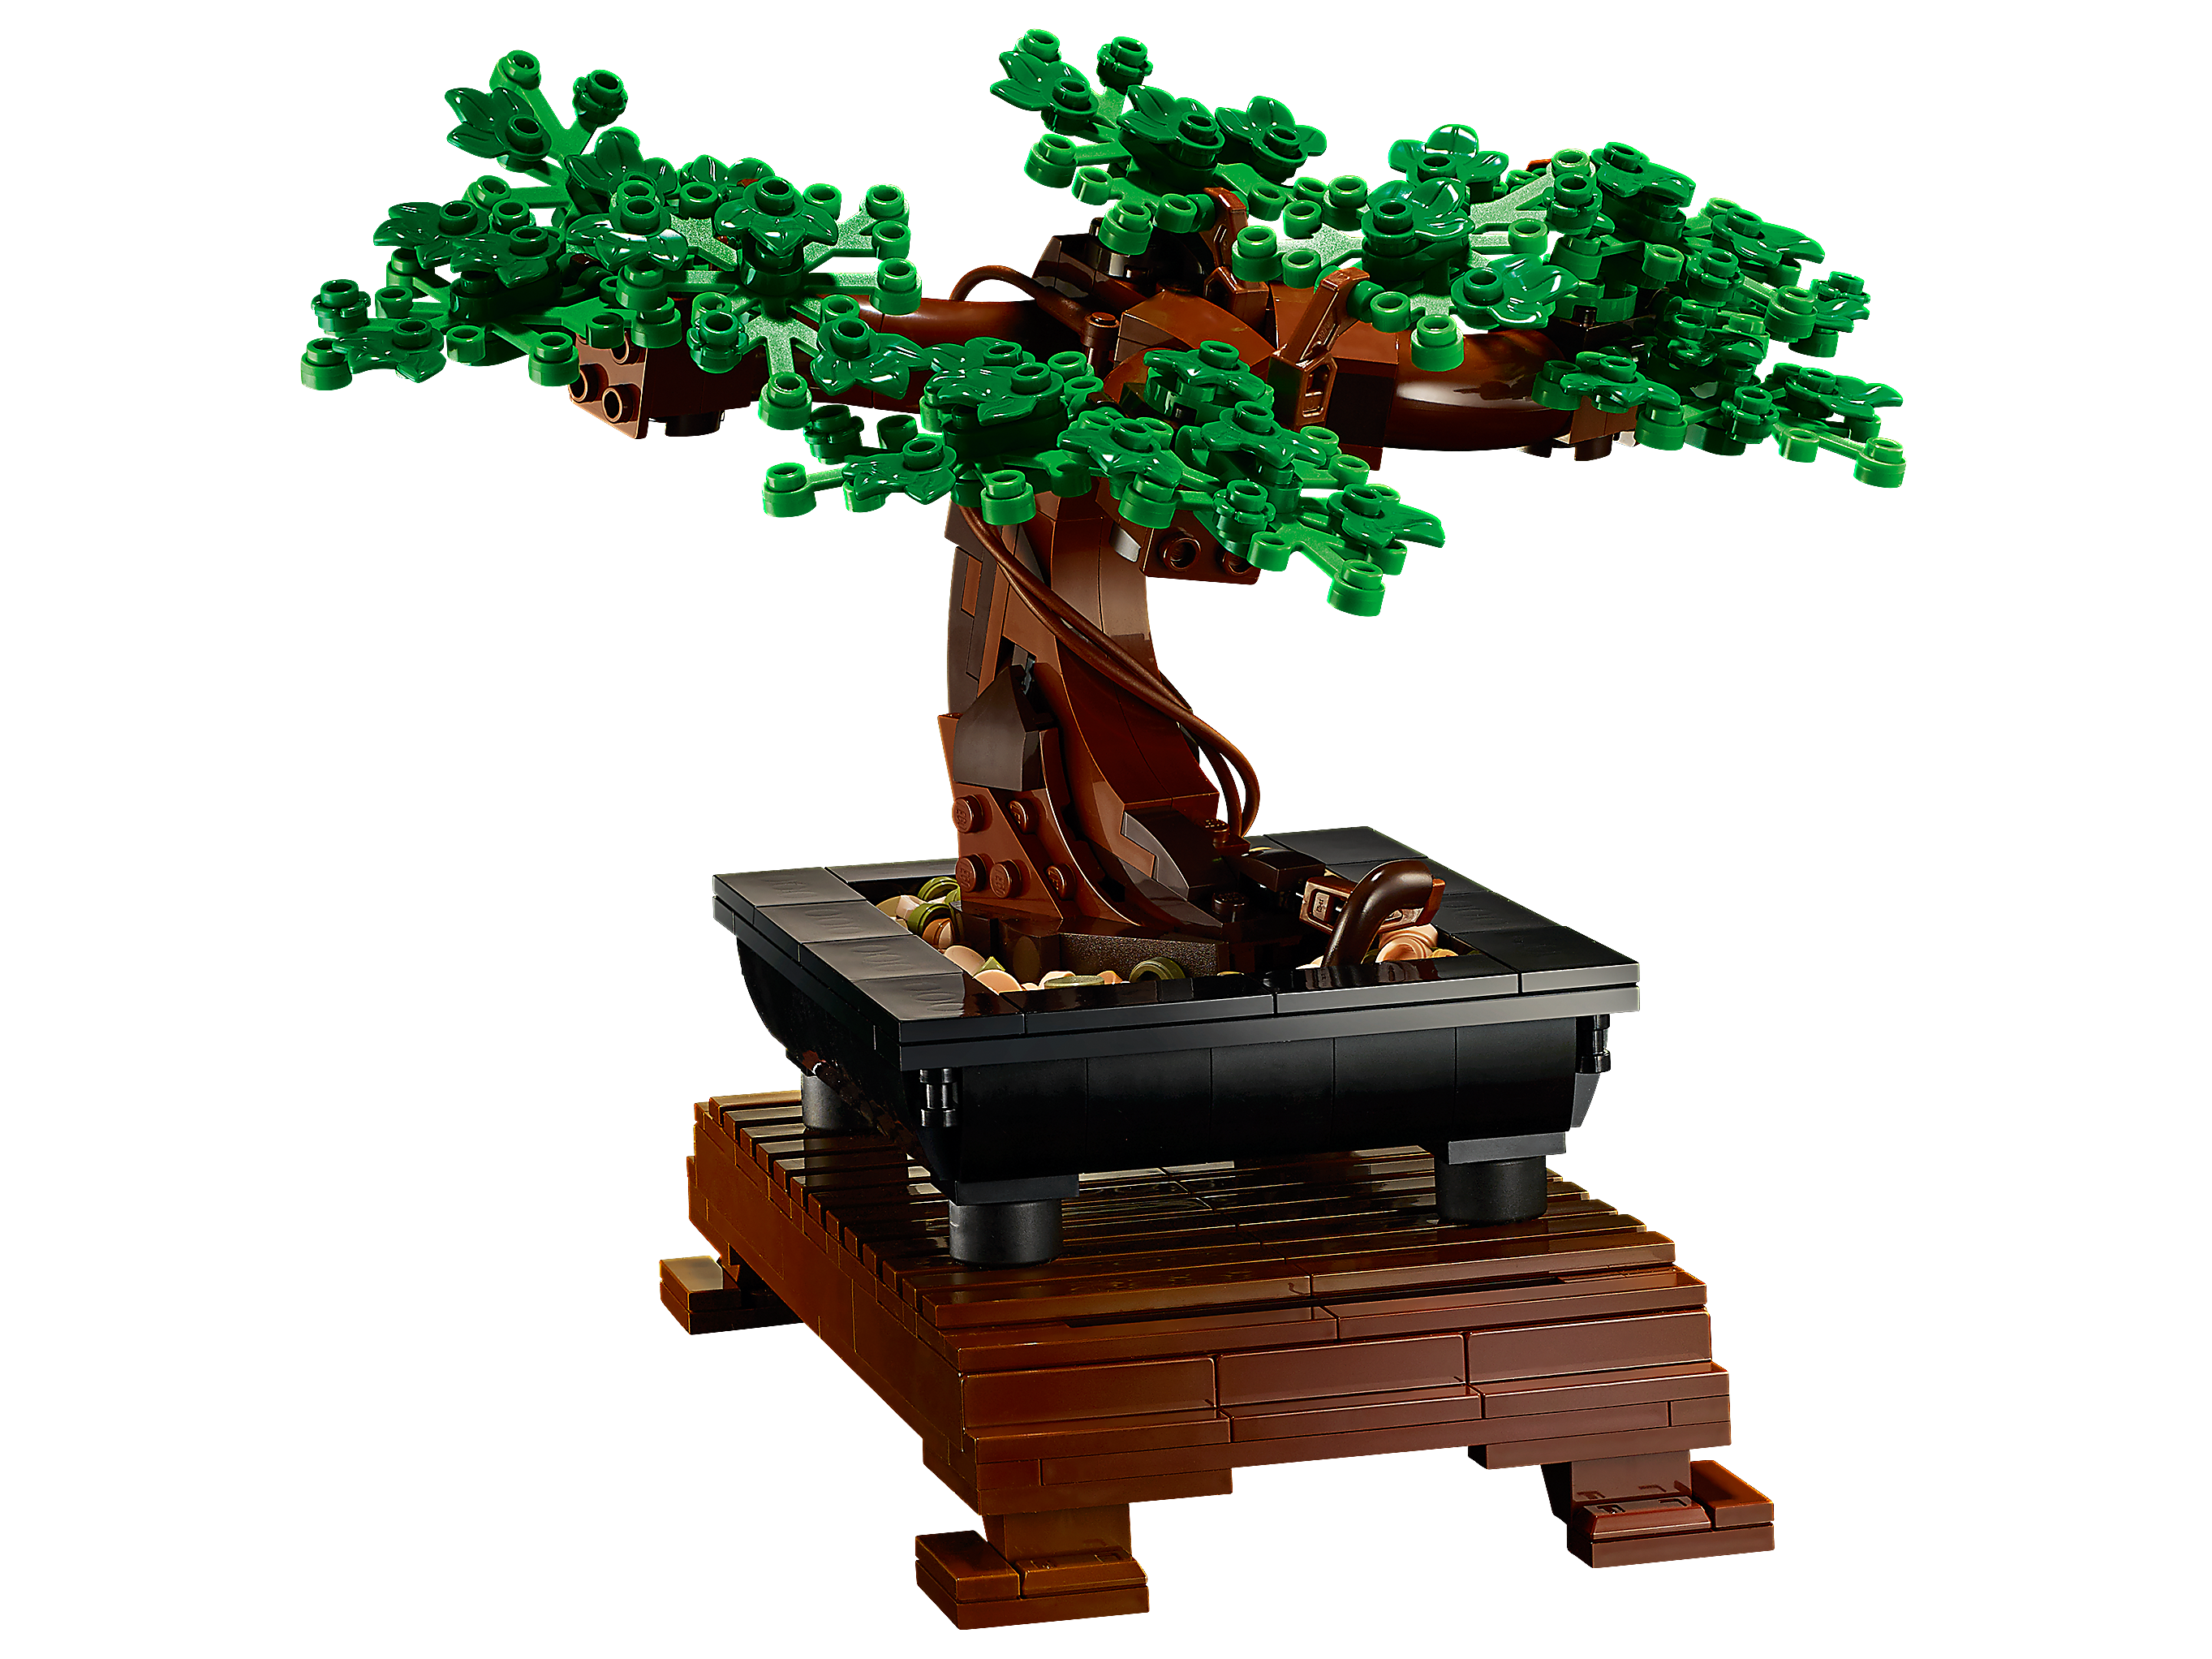 Bonsai Tree 10281 Creator Expert Buy Online At The Official Lego Shop Mx